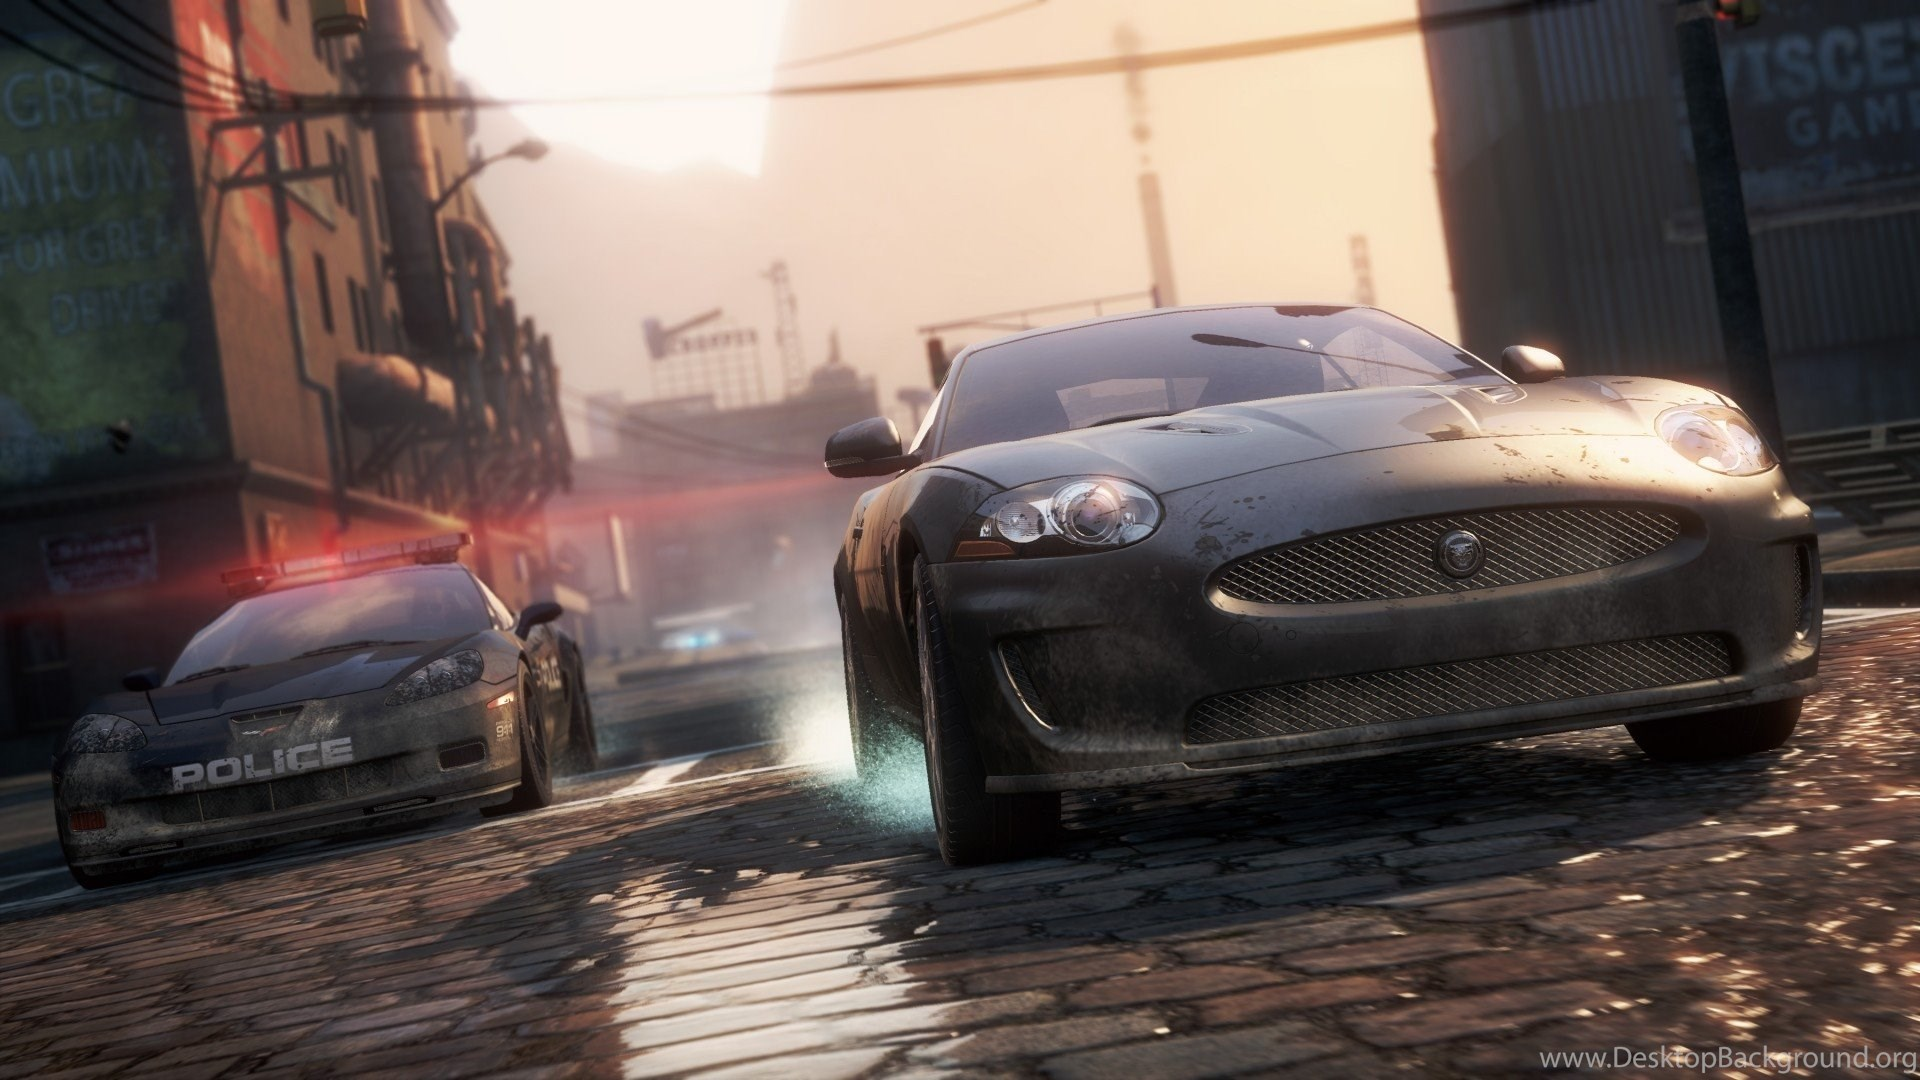 Need For Speed Most Wanted 2 Computer Wallpapers Desktop Desktop Background